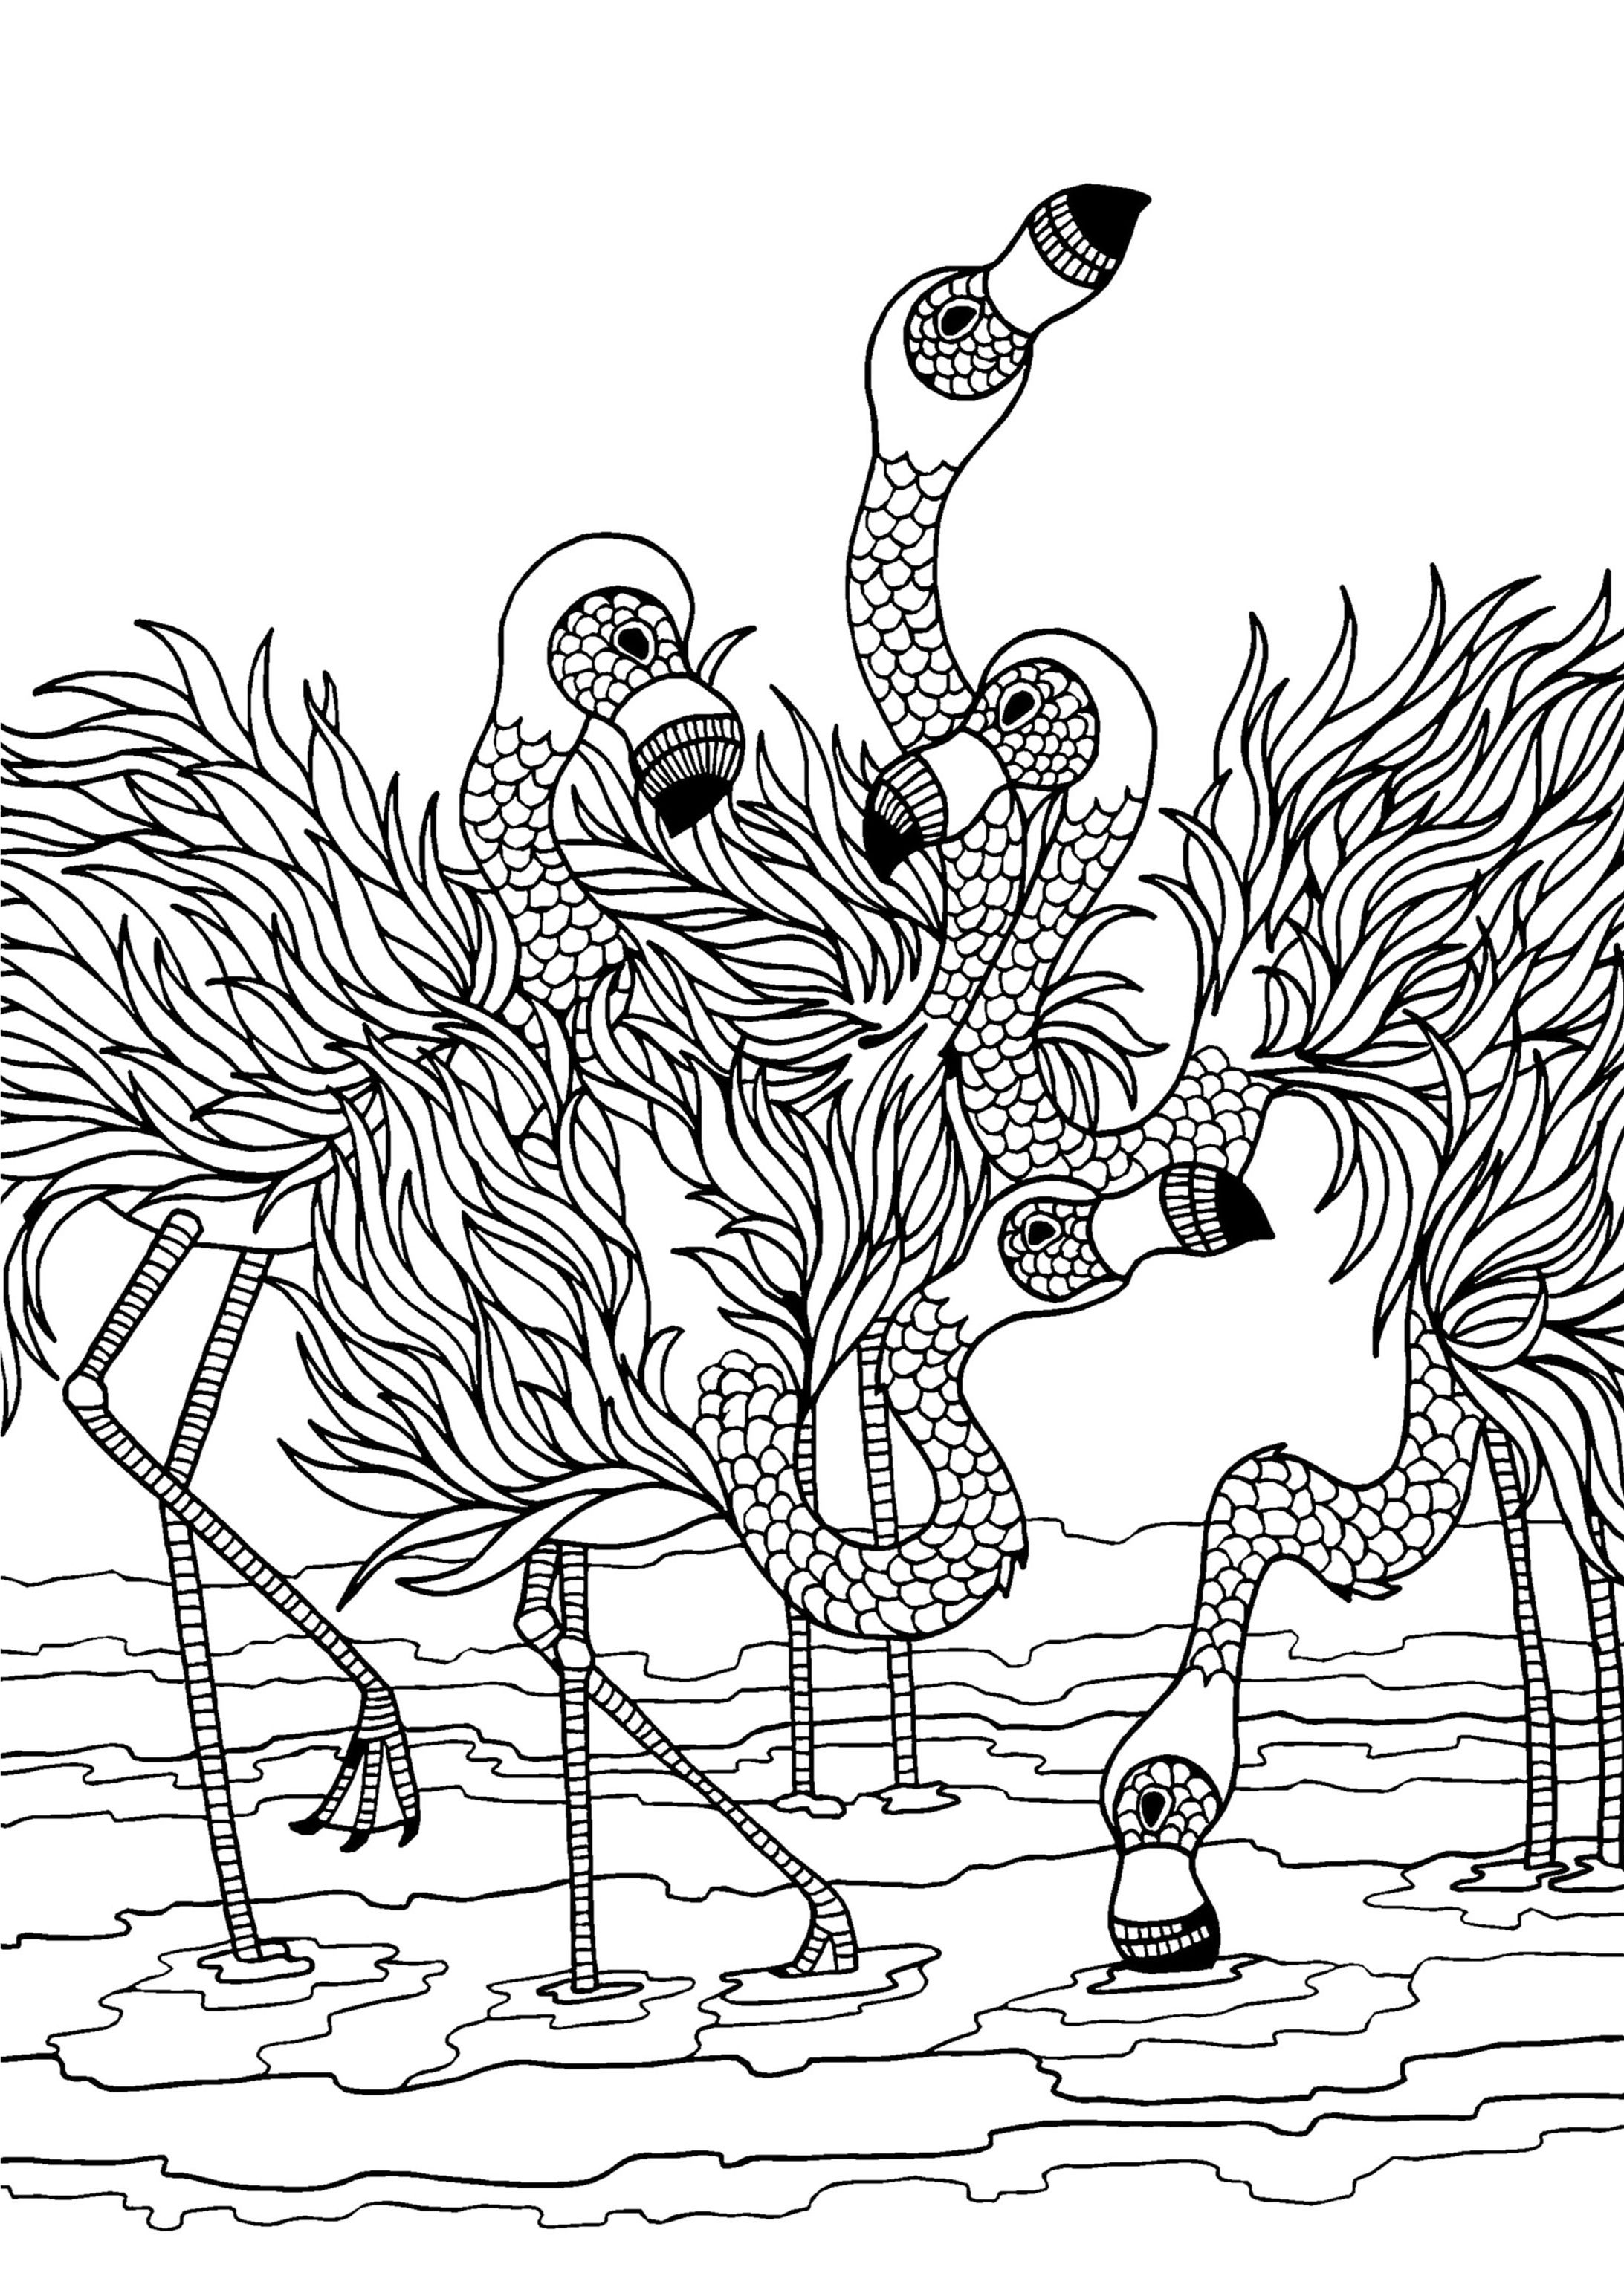 Pin On Owls Birds Zentangles Colouring Pages